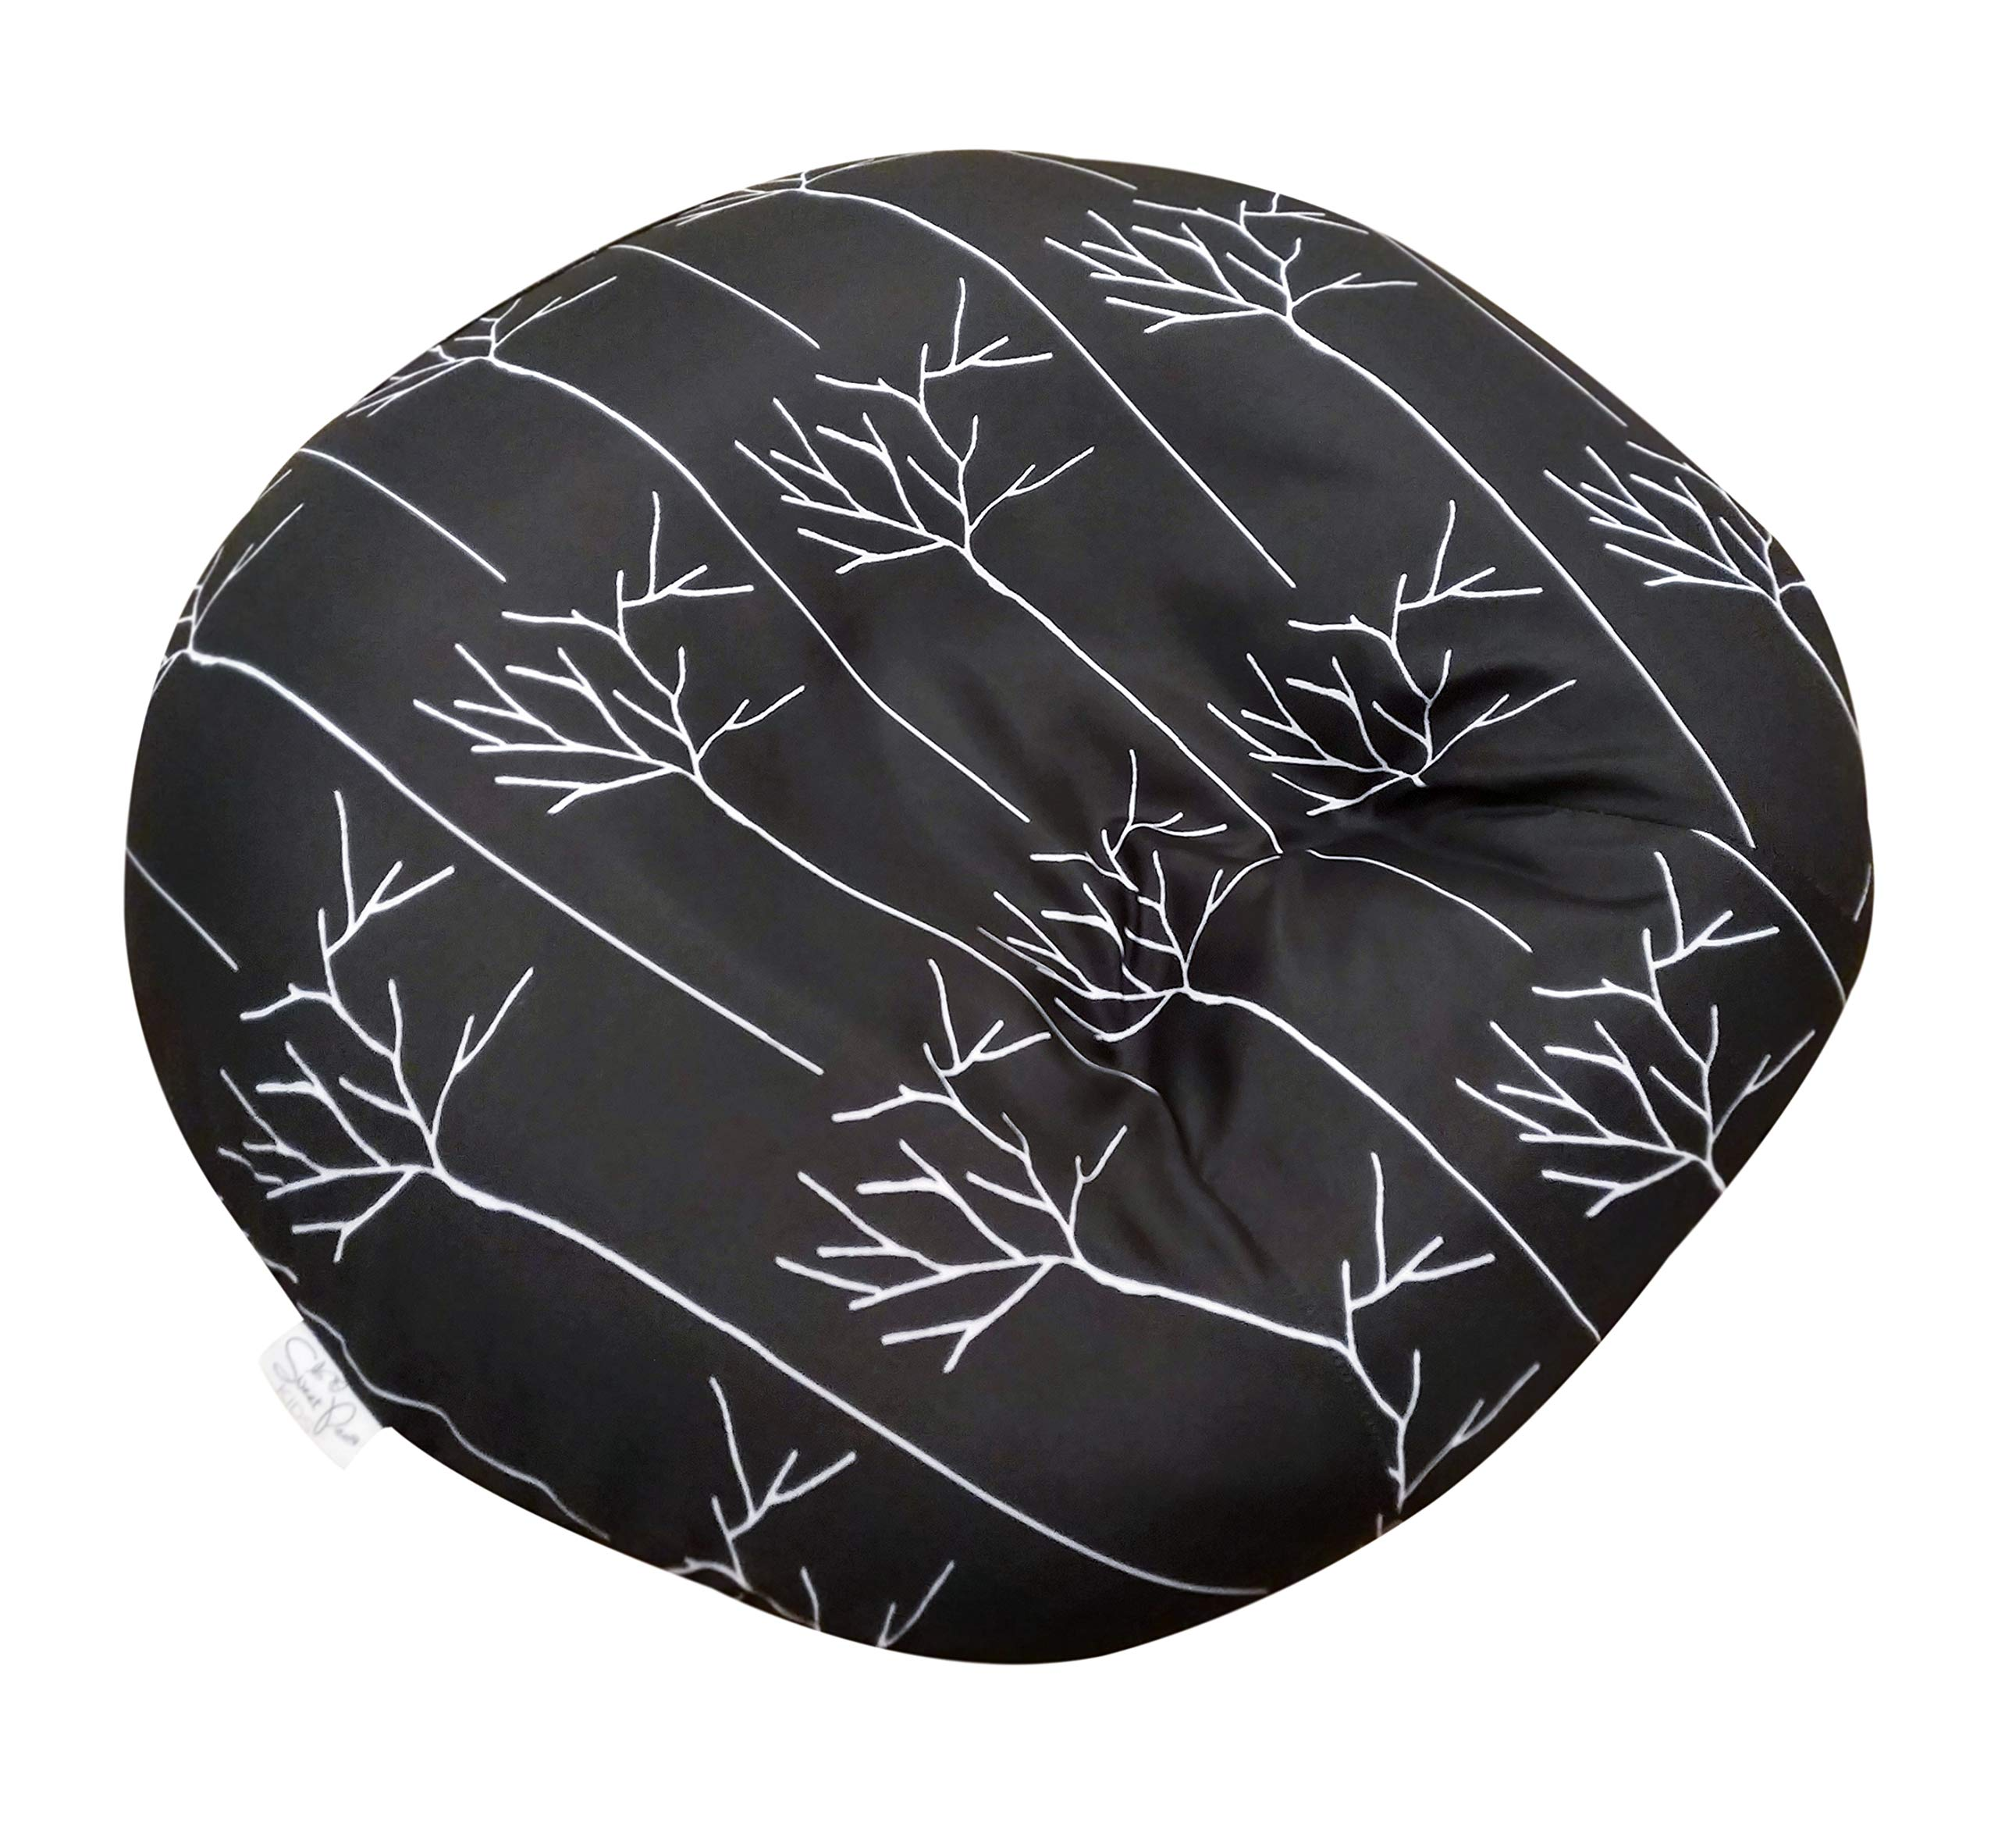 Newborn Lounger Cover Designer Look | Black Branches | Water Resistant | Removable & Washable | Premium Soft Quality | Fits Boppy Infant Lounger Pillow not Included | Great Baby Shower Gift by Sweet Pea Kids